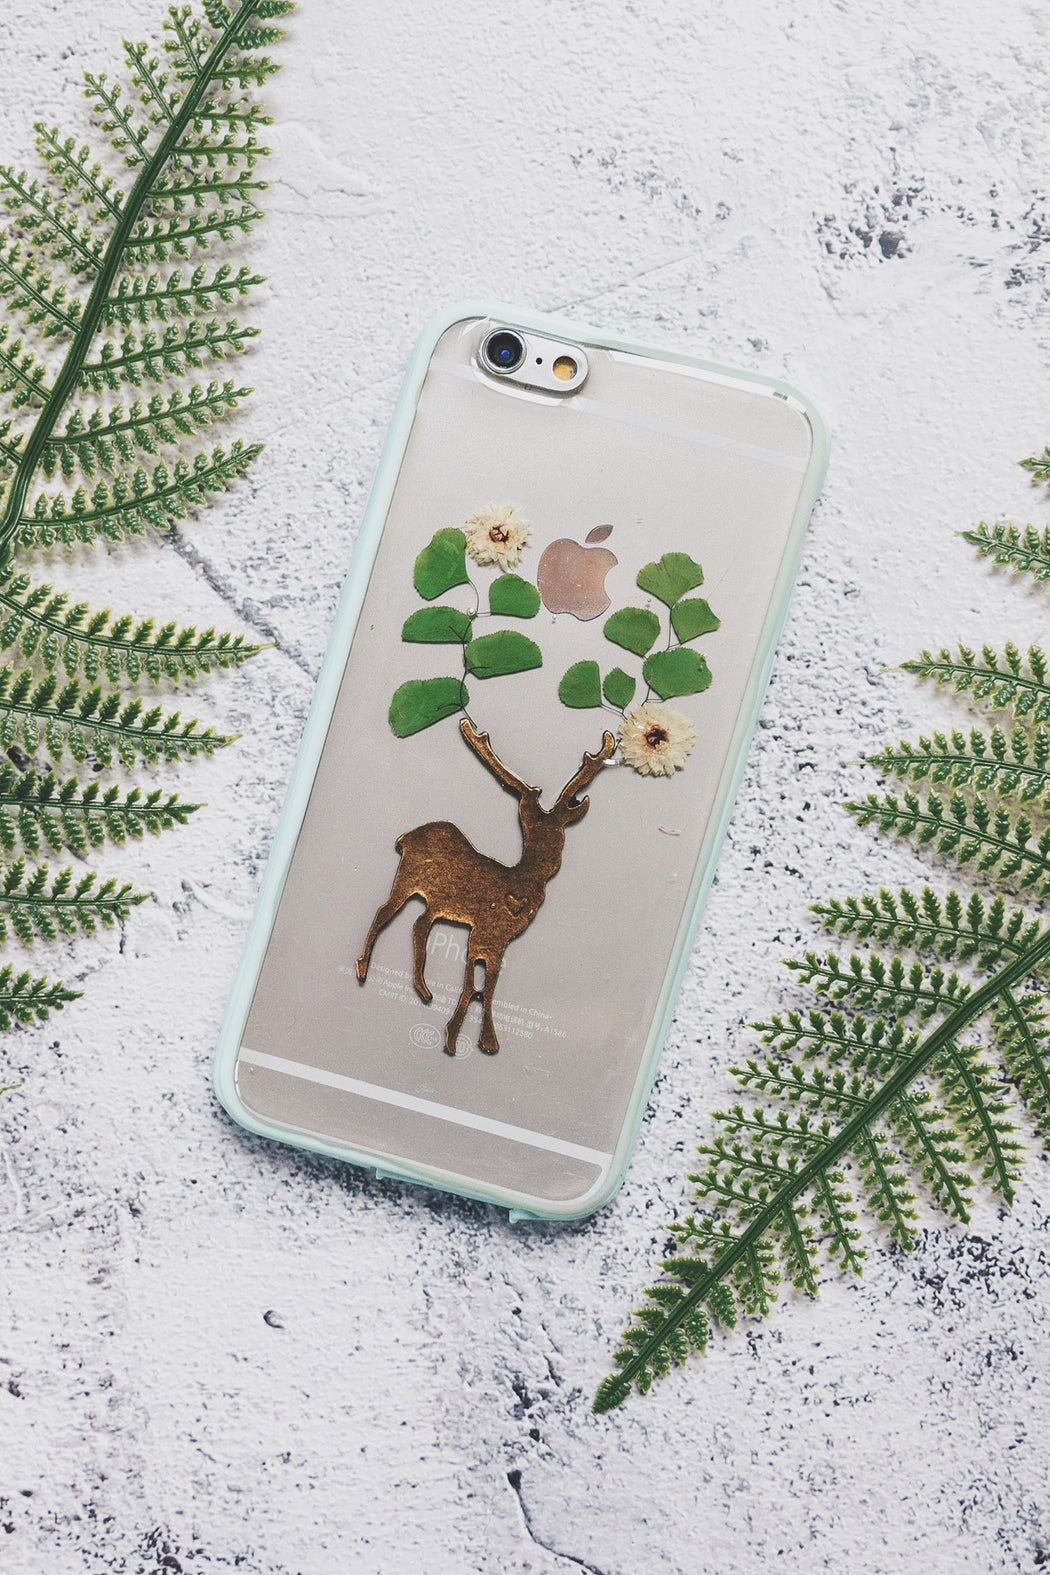 pressed flower green fern leaf floral cute protective iphone 6 6s bumper case secret forest floral neverland floralfy